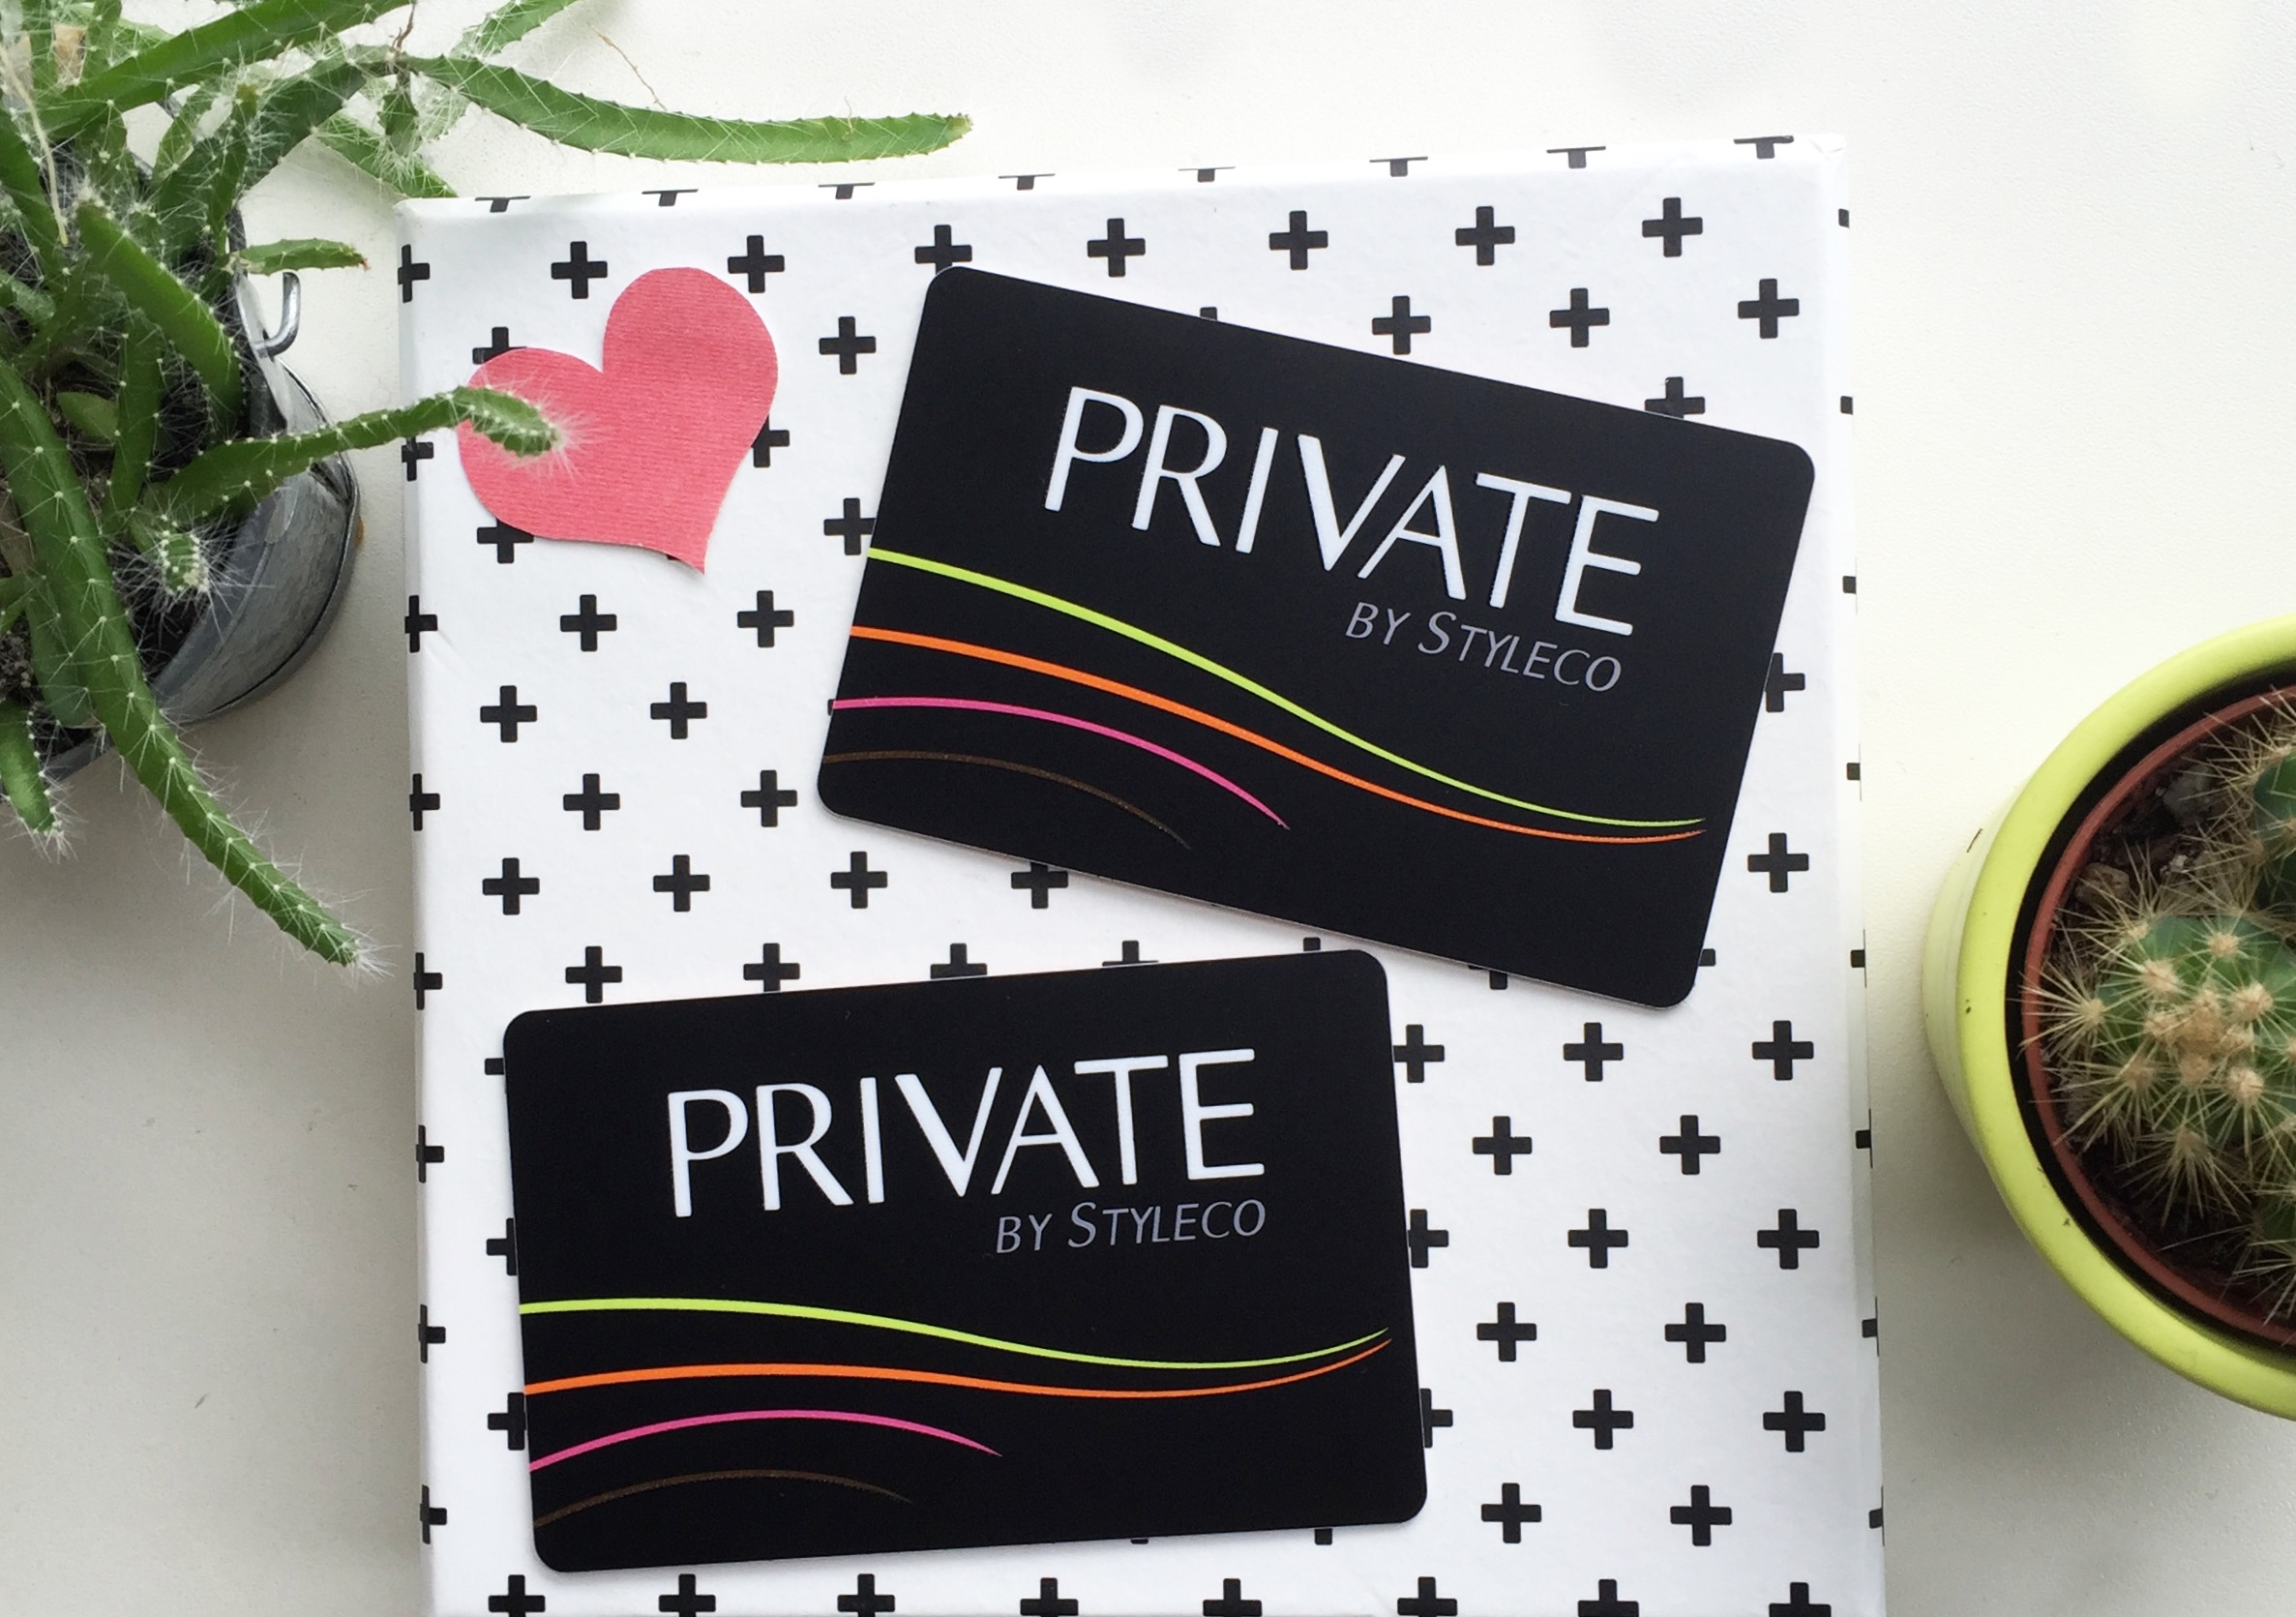 Cartes private Styleco